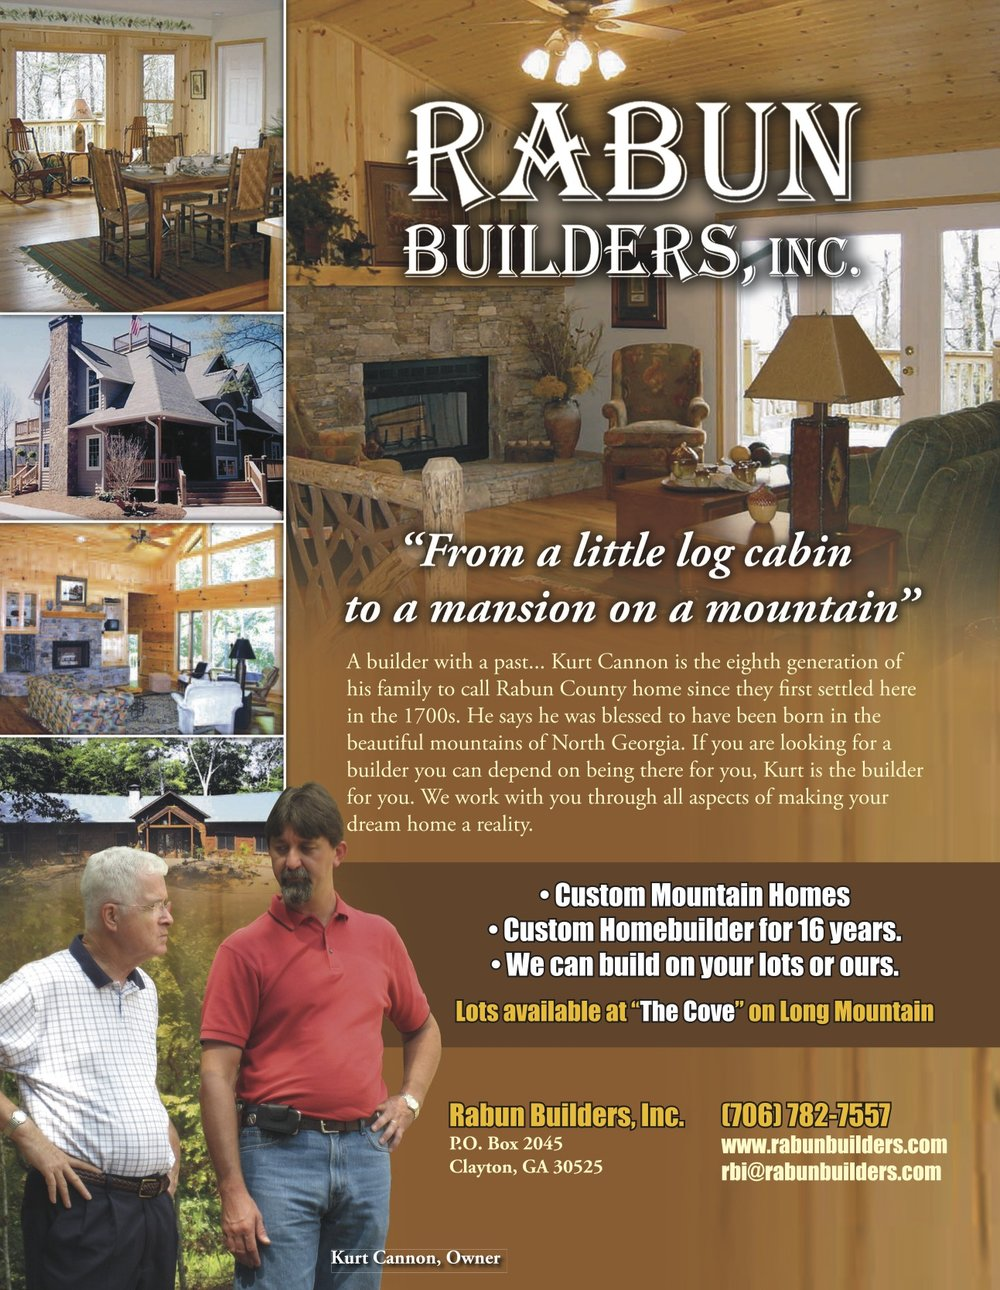 Georgia Builder - October 2006